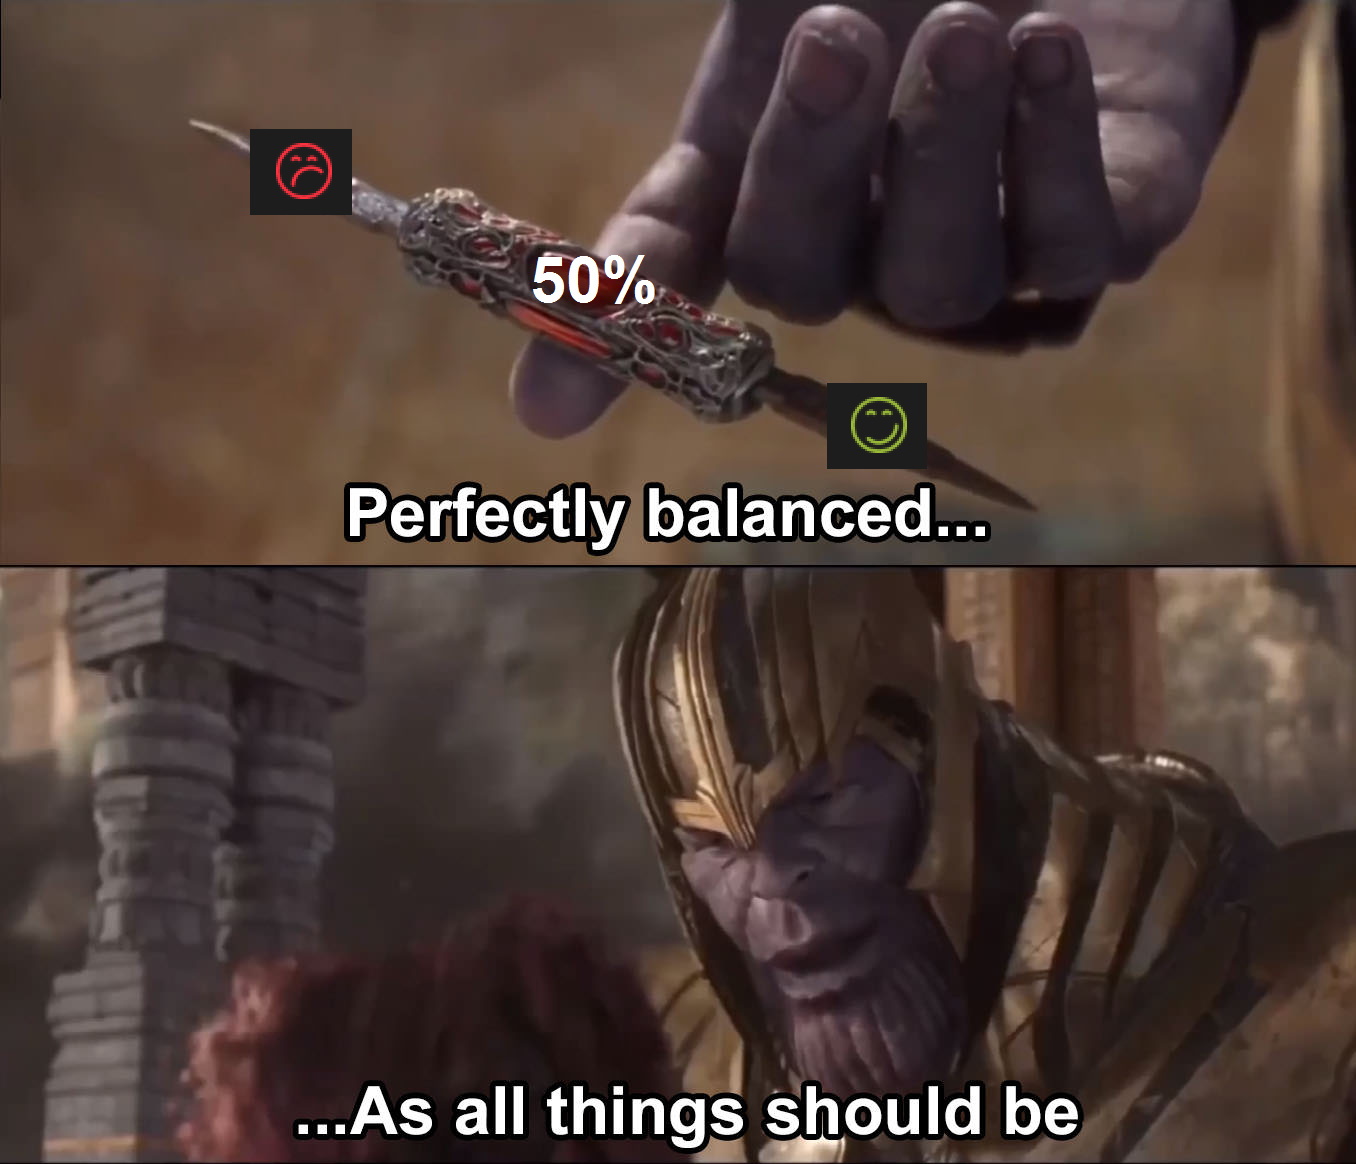 Keep the upvotes and downvotes perfectly balanced or Thanos will snap - meme